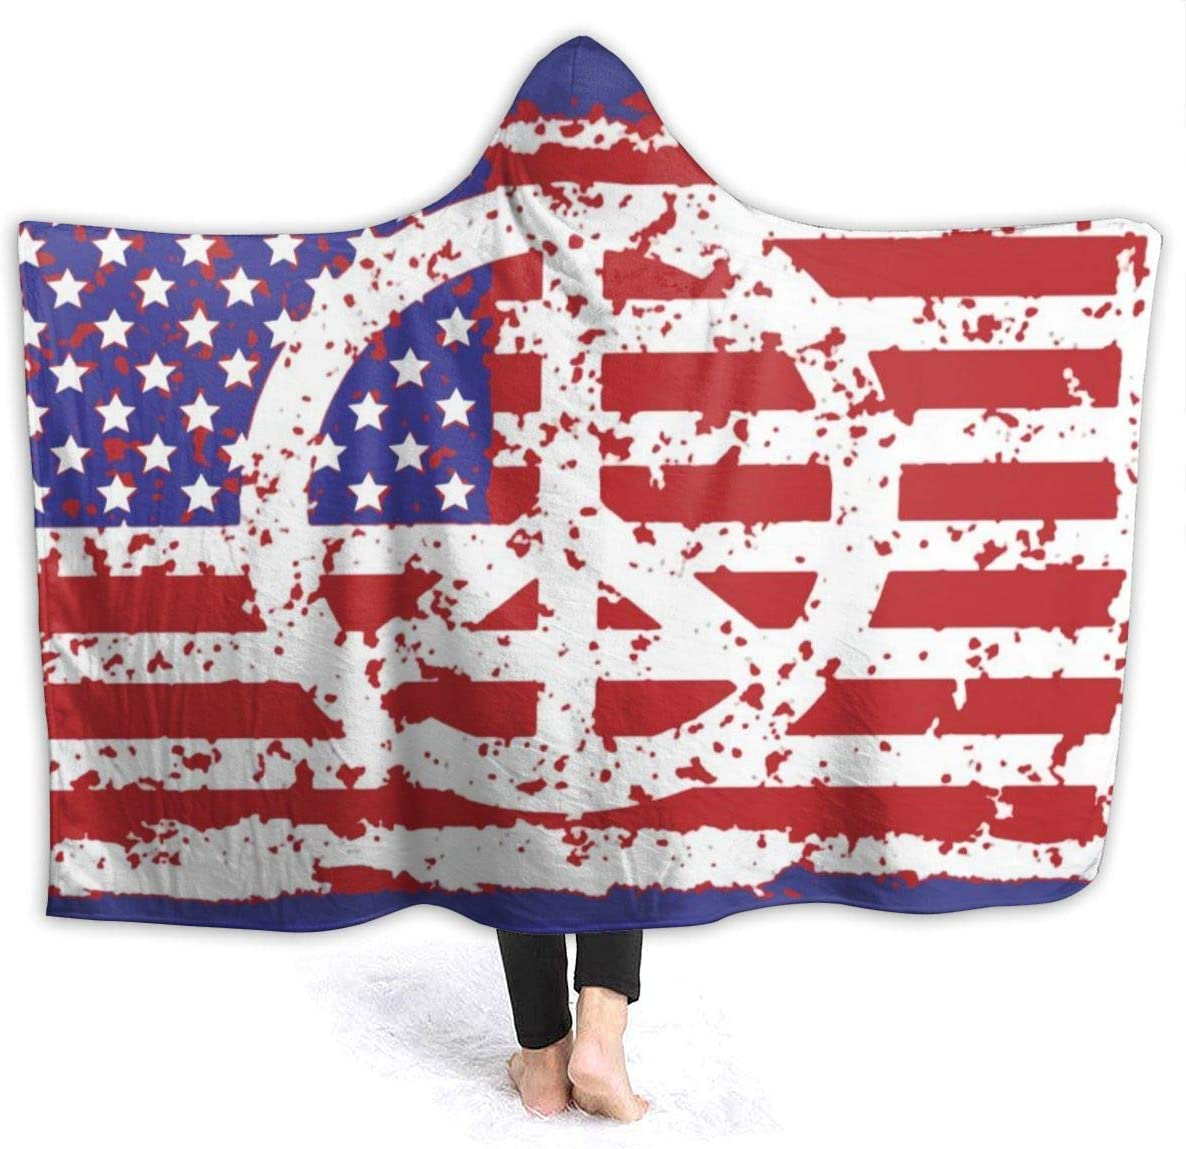 AUISS Warm Hoodie Blanket American National Peace Hooded Throw Wrap Cape Cloak Bathrobe Womens Durable Home Office Shawl Flannel with Sleeves